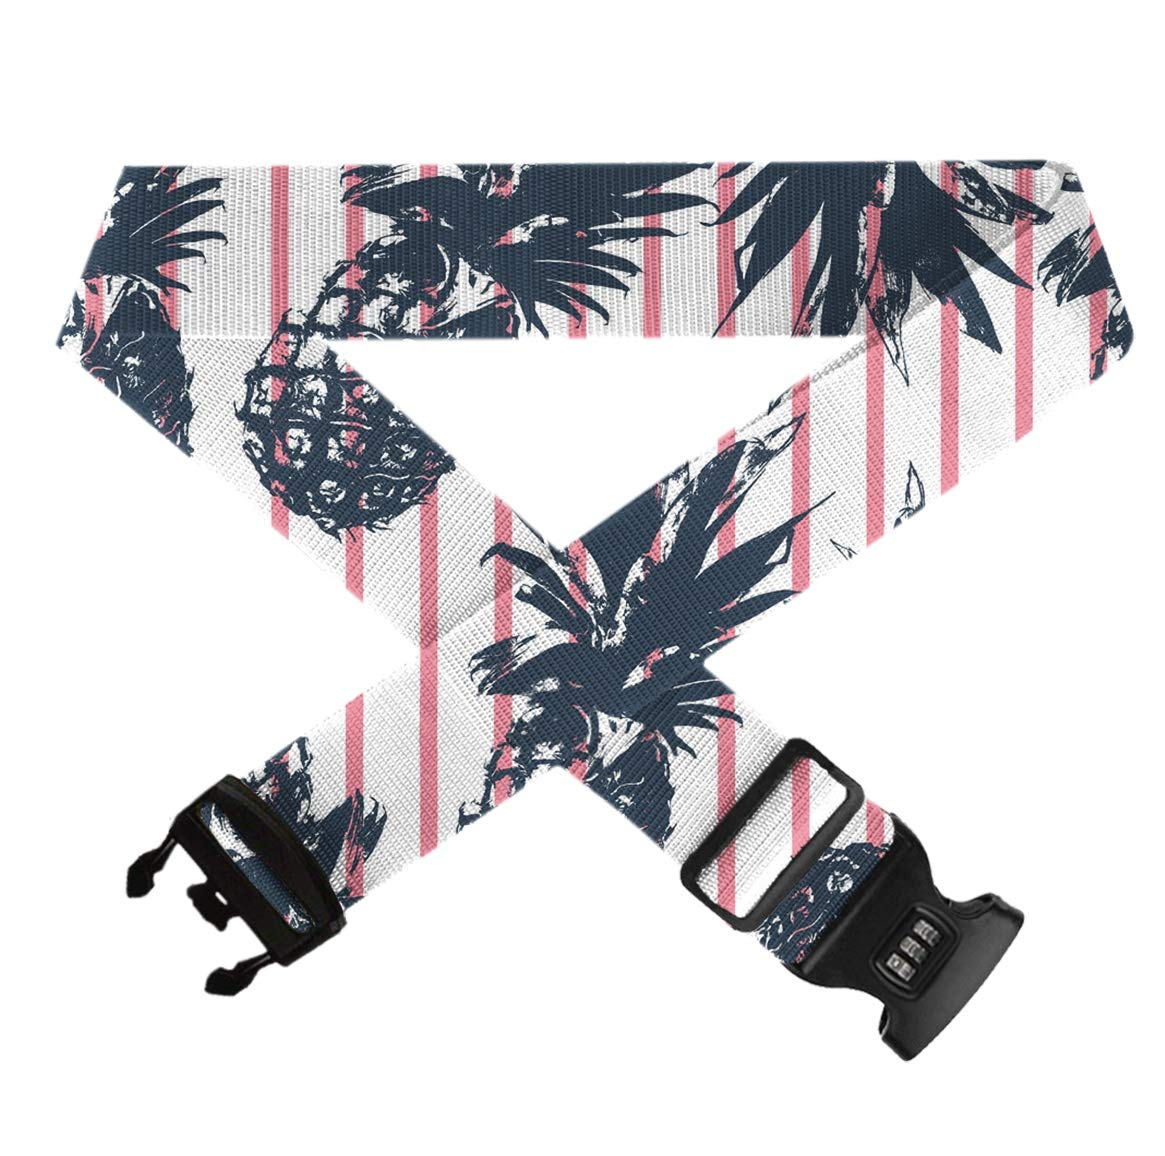 Tropical Plants Pineapple Funnny Travel Luggage Strap Elastic Adjustable Length Luggage Packing Belt With Combination Lock And Buckle Closure Travel Belts Accessories